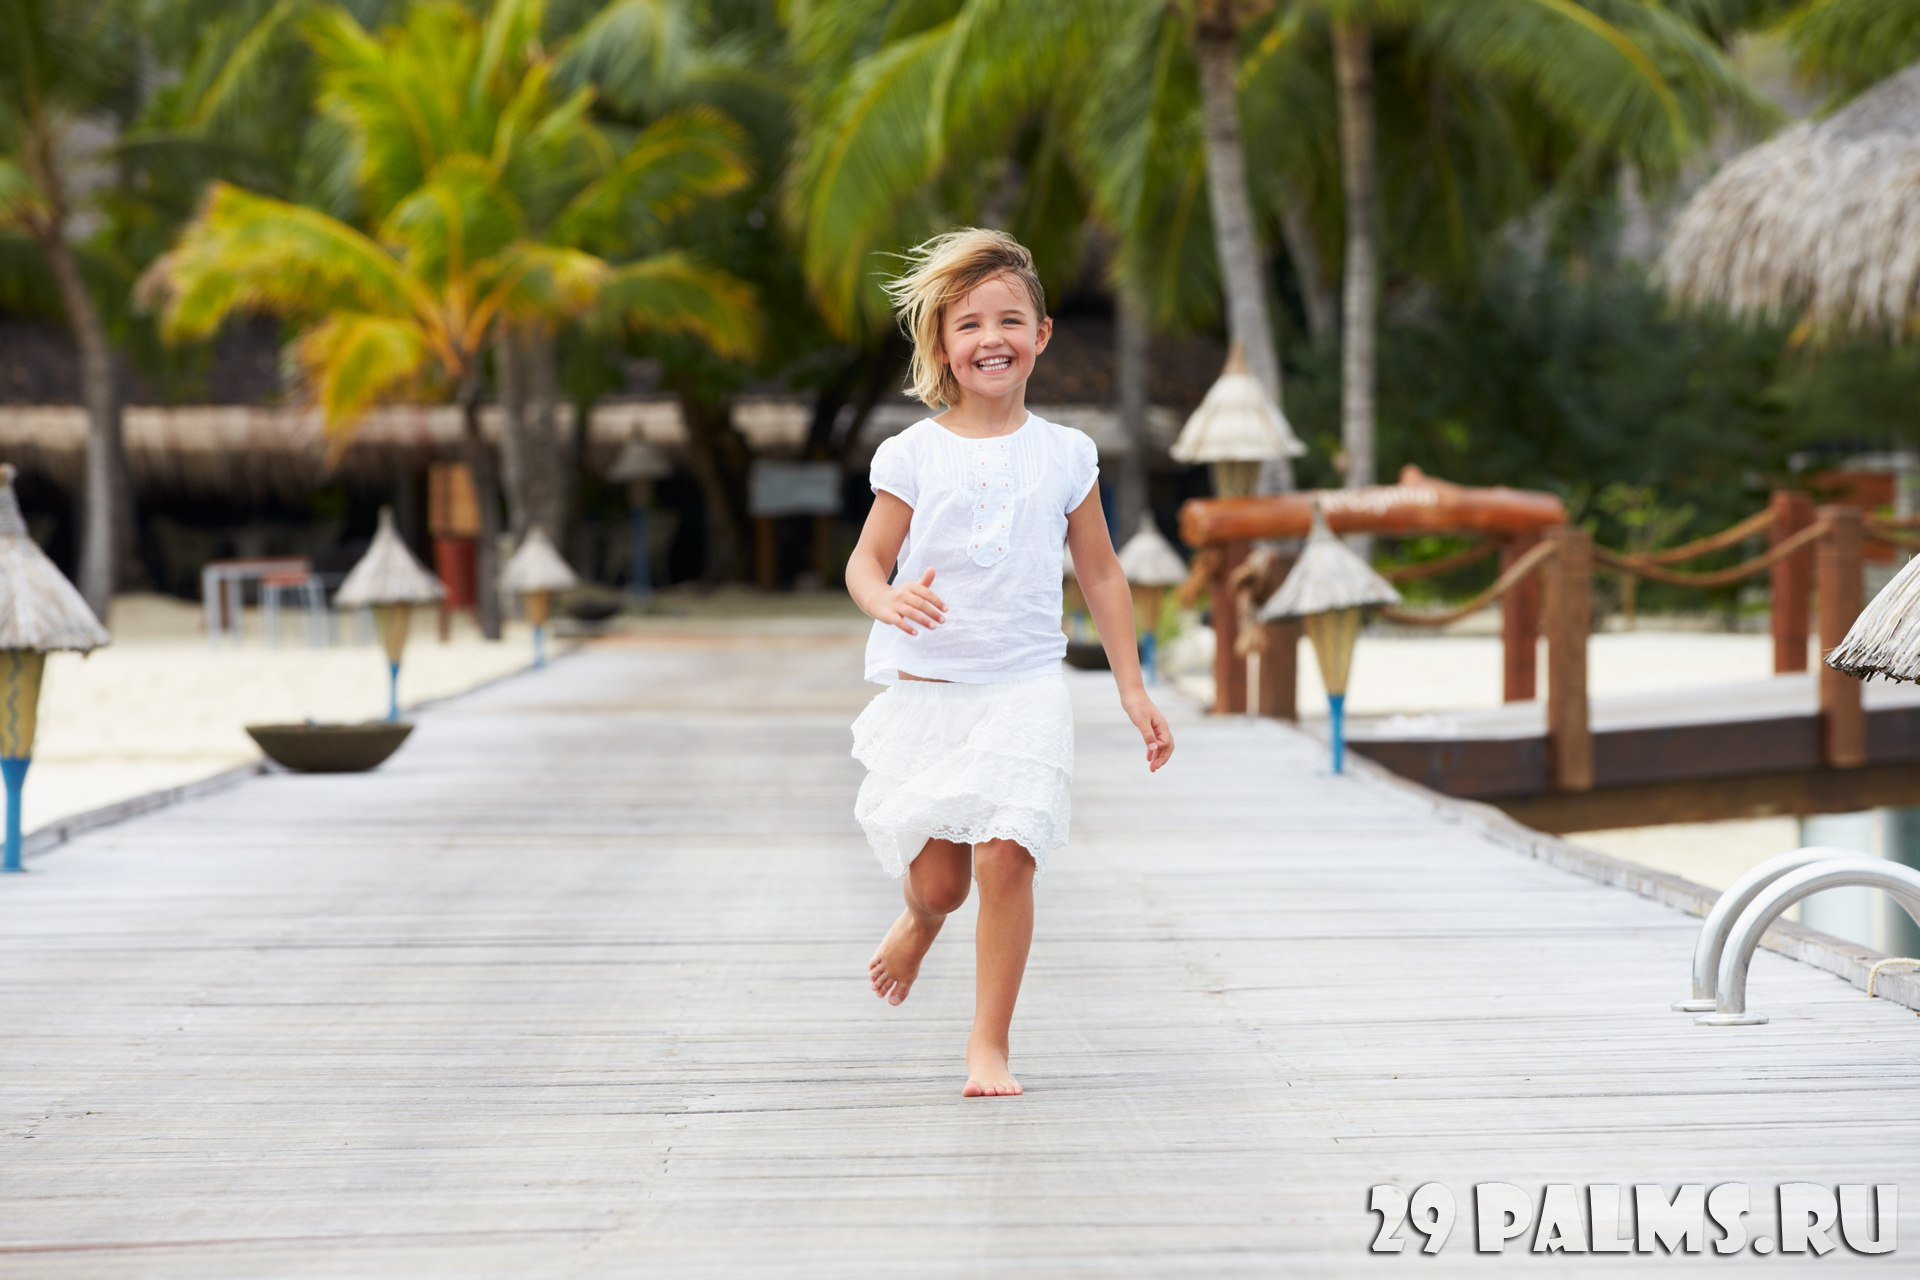 Клуб путешествий Павла Аксенова. Мальдивы. Soneva Fushi, Maldives. Child Running Along Wooden Jetty. Фото monkeybusiness - Depositphotos